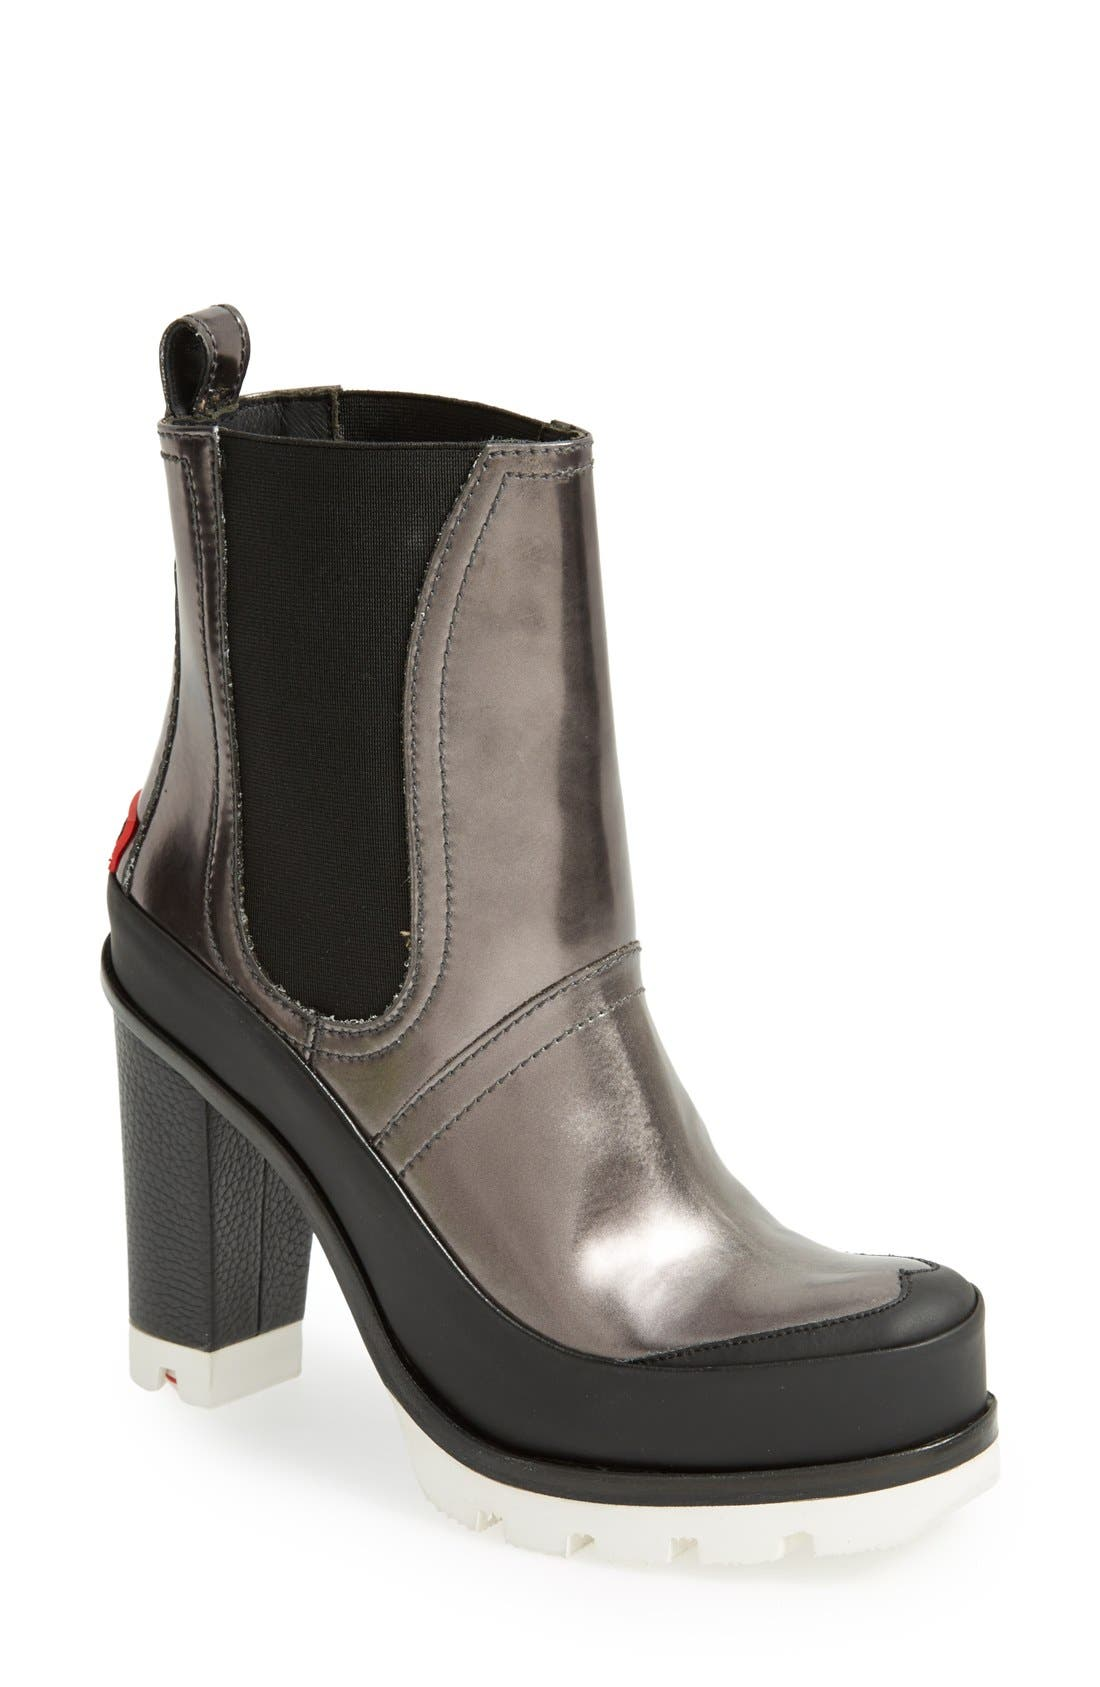 Main Image - Hunter 'Original - High Heel' Chelsea Rain Boot (Women)